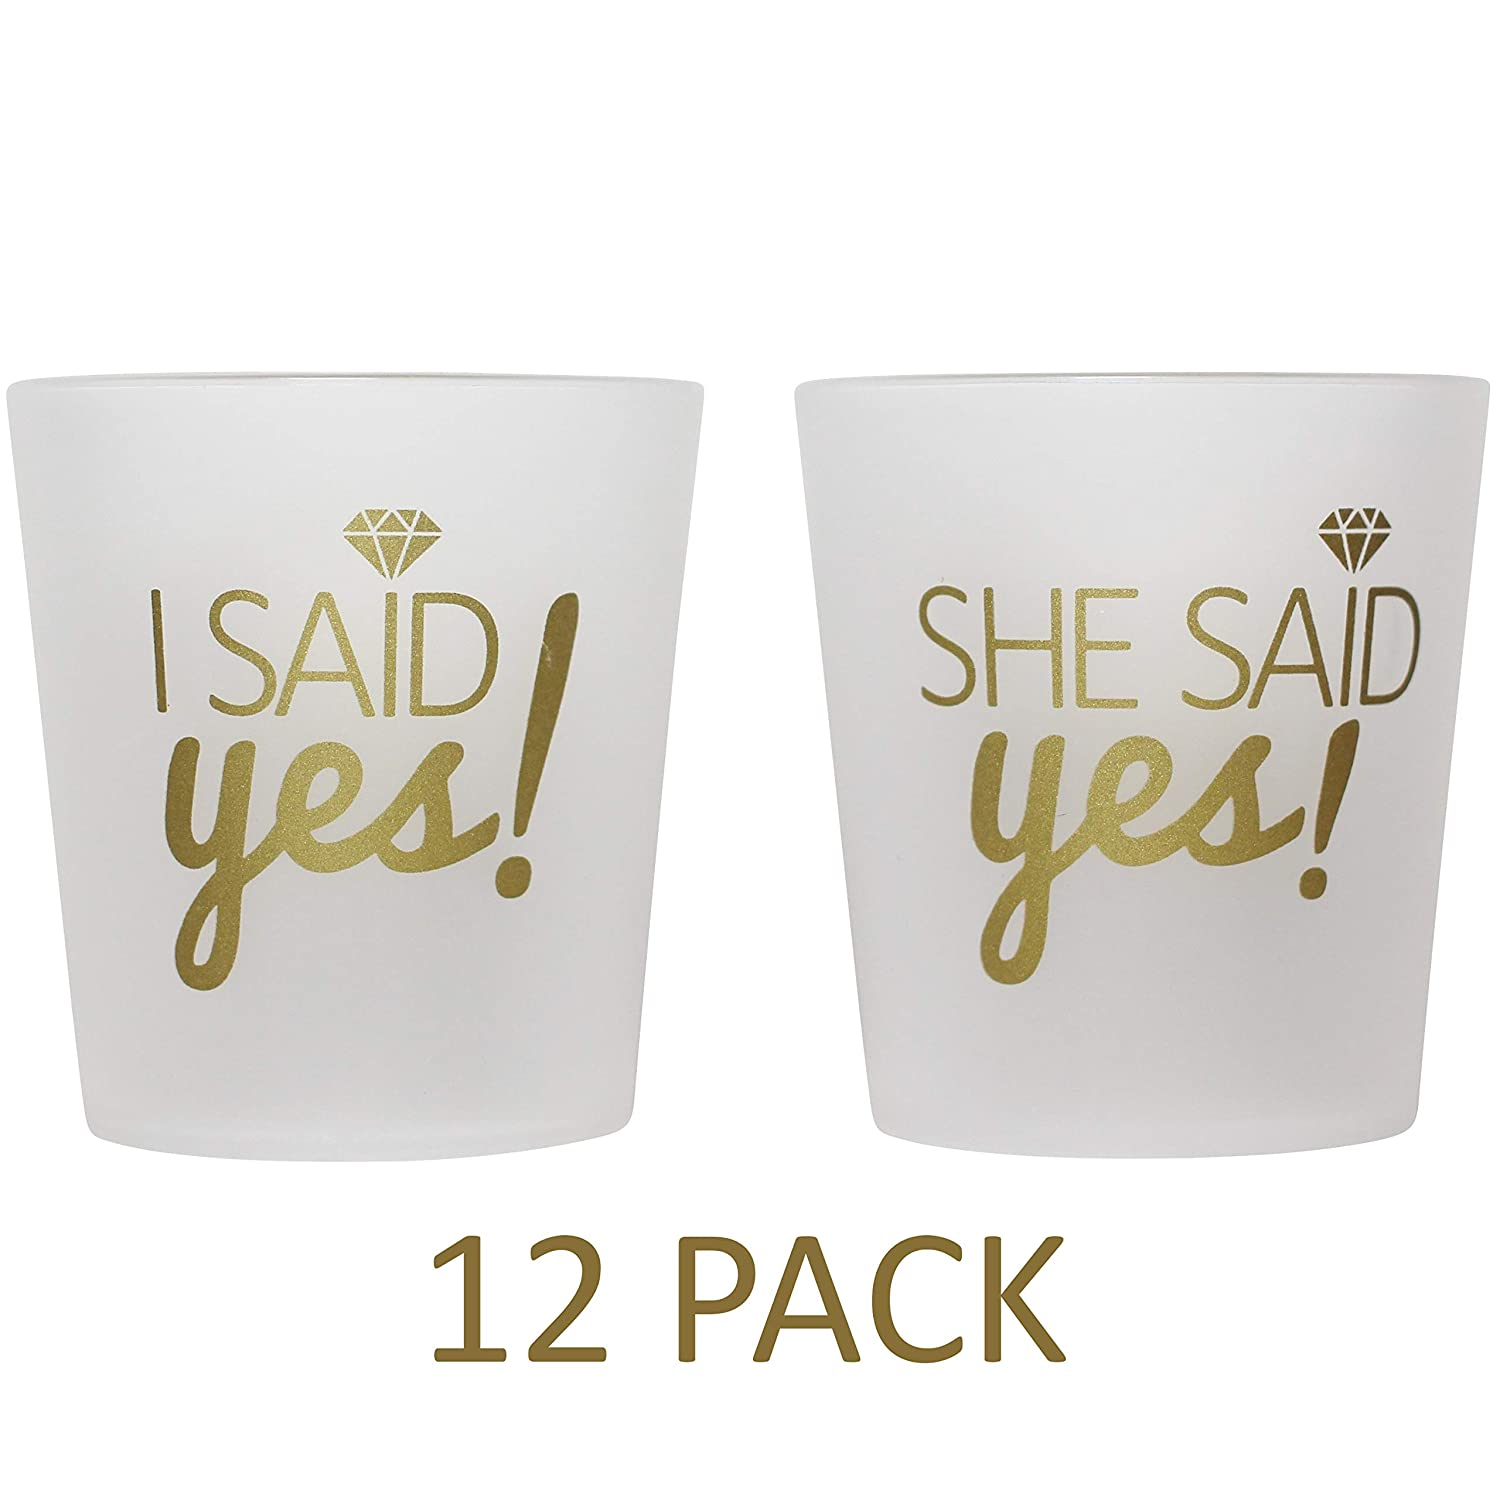 "Bridal 2 oz. Shot Glasses 12 Cups Set - 1 ""I Said Yes!"" & 11 ""She Said Yes!"" - Bridesmaids, Engagement, Bachelorette, Shower Party, Wedding - Props, Favors - Frosted & Gold - High Quality Guarantee Breeze Moments Inc."